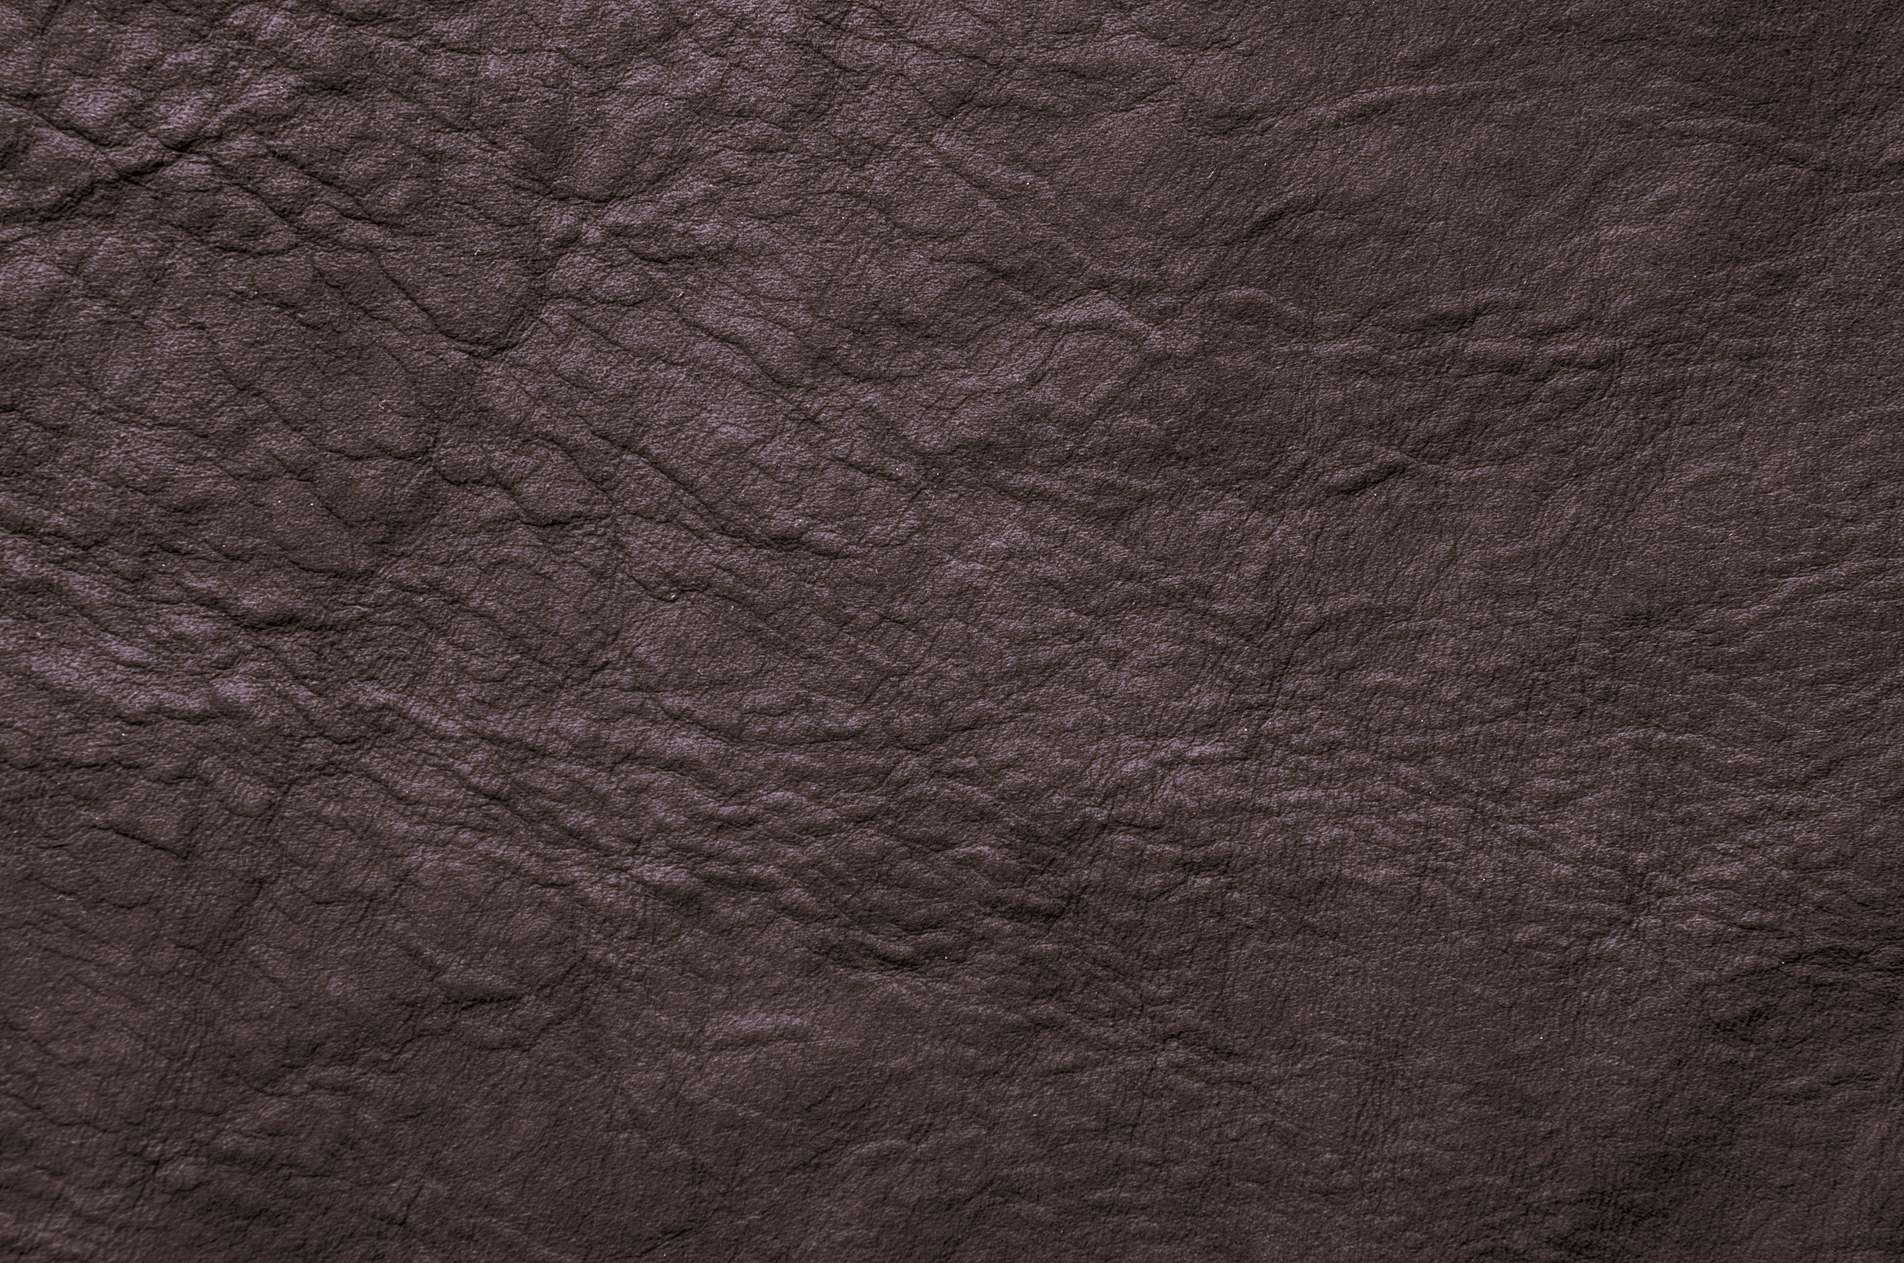 dark brown wrinkled leather background photohdx